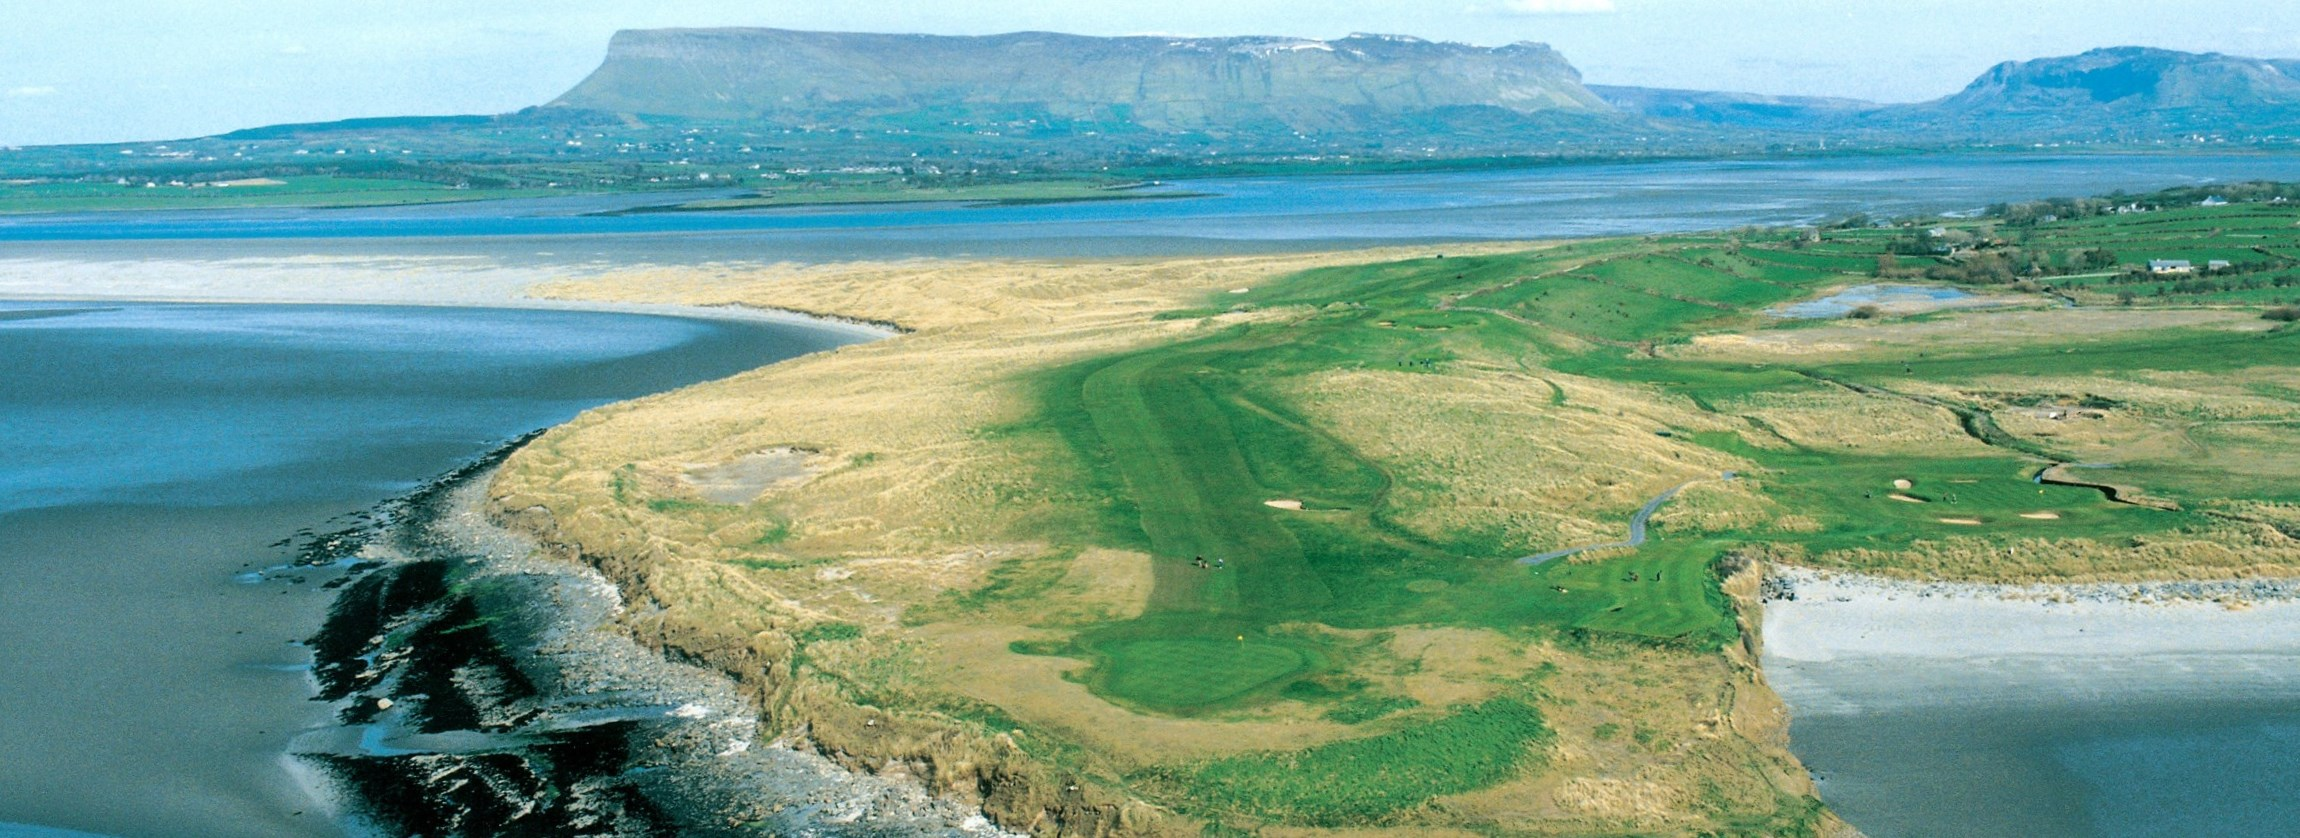 The County Sligo Golf Club, Ireland